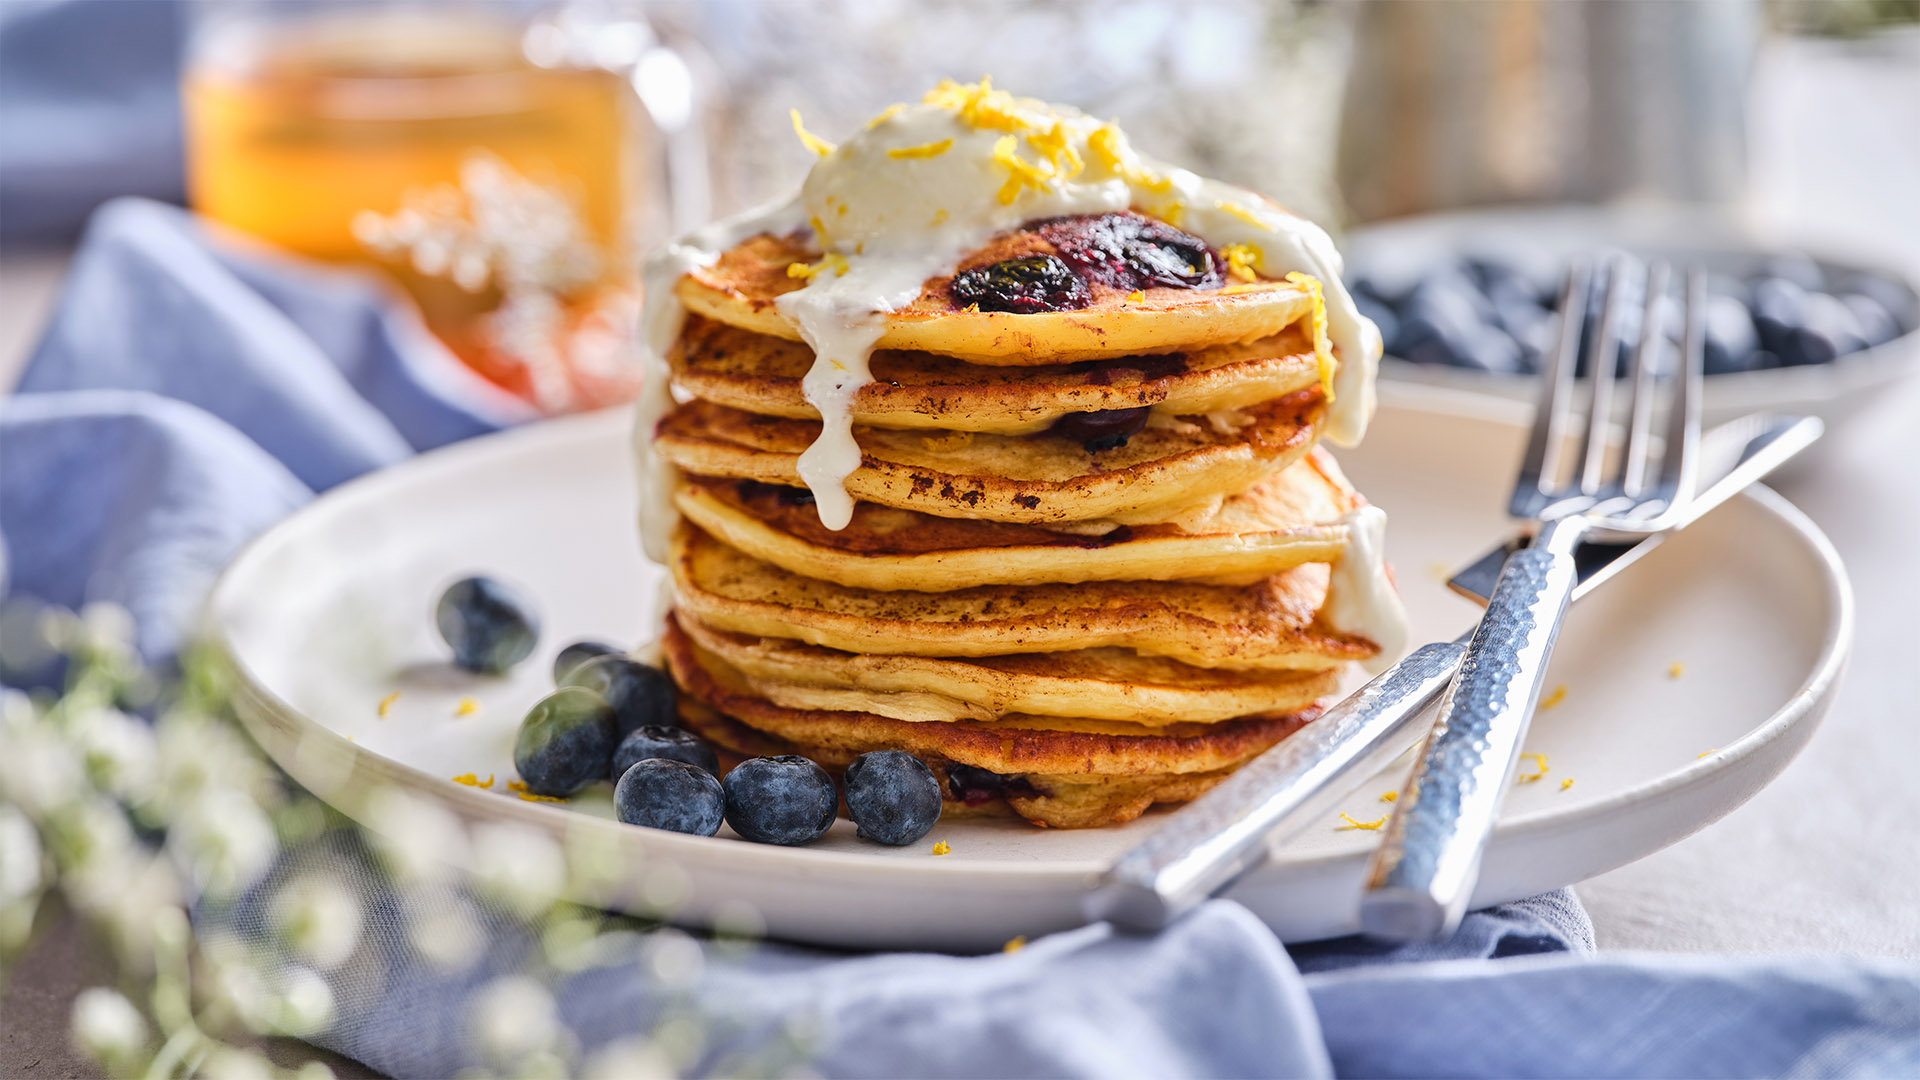 Ten Lemon and Blueberry Ricotta Pancakes are stacked on a stoneware plate, and topped with lemon cheesecake drizzle.